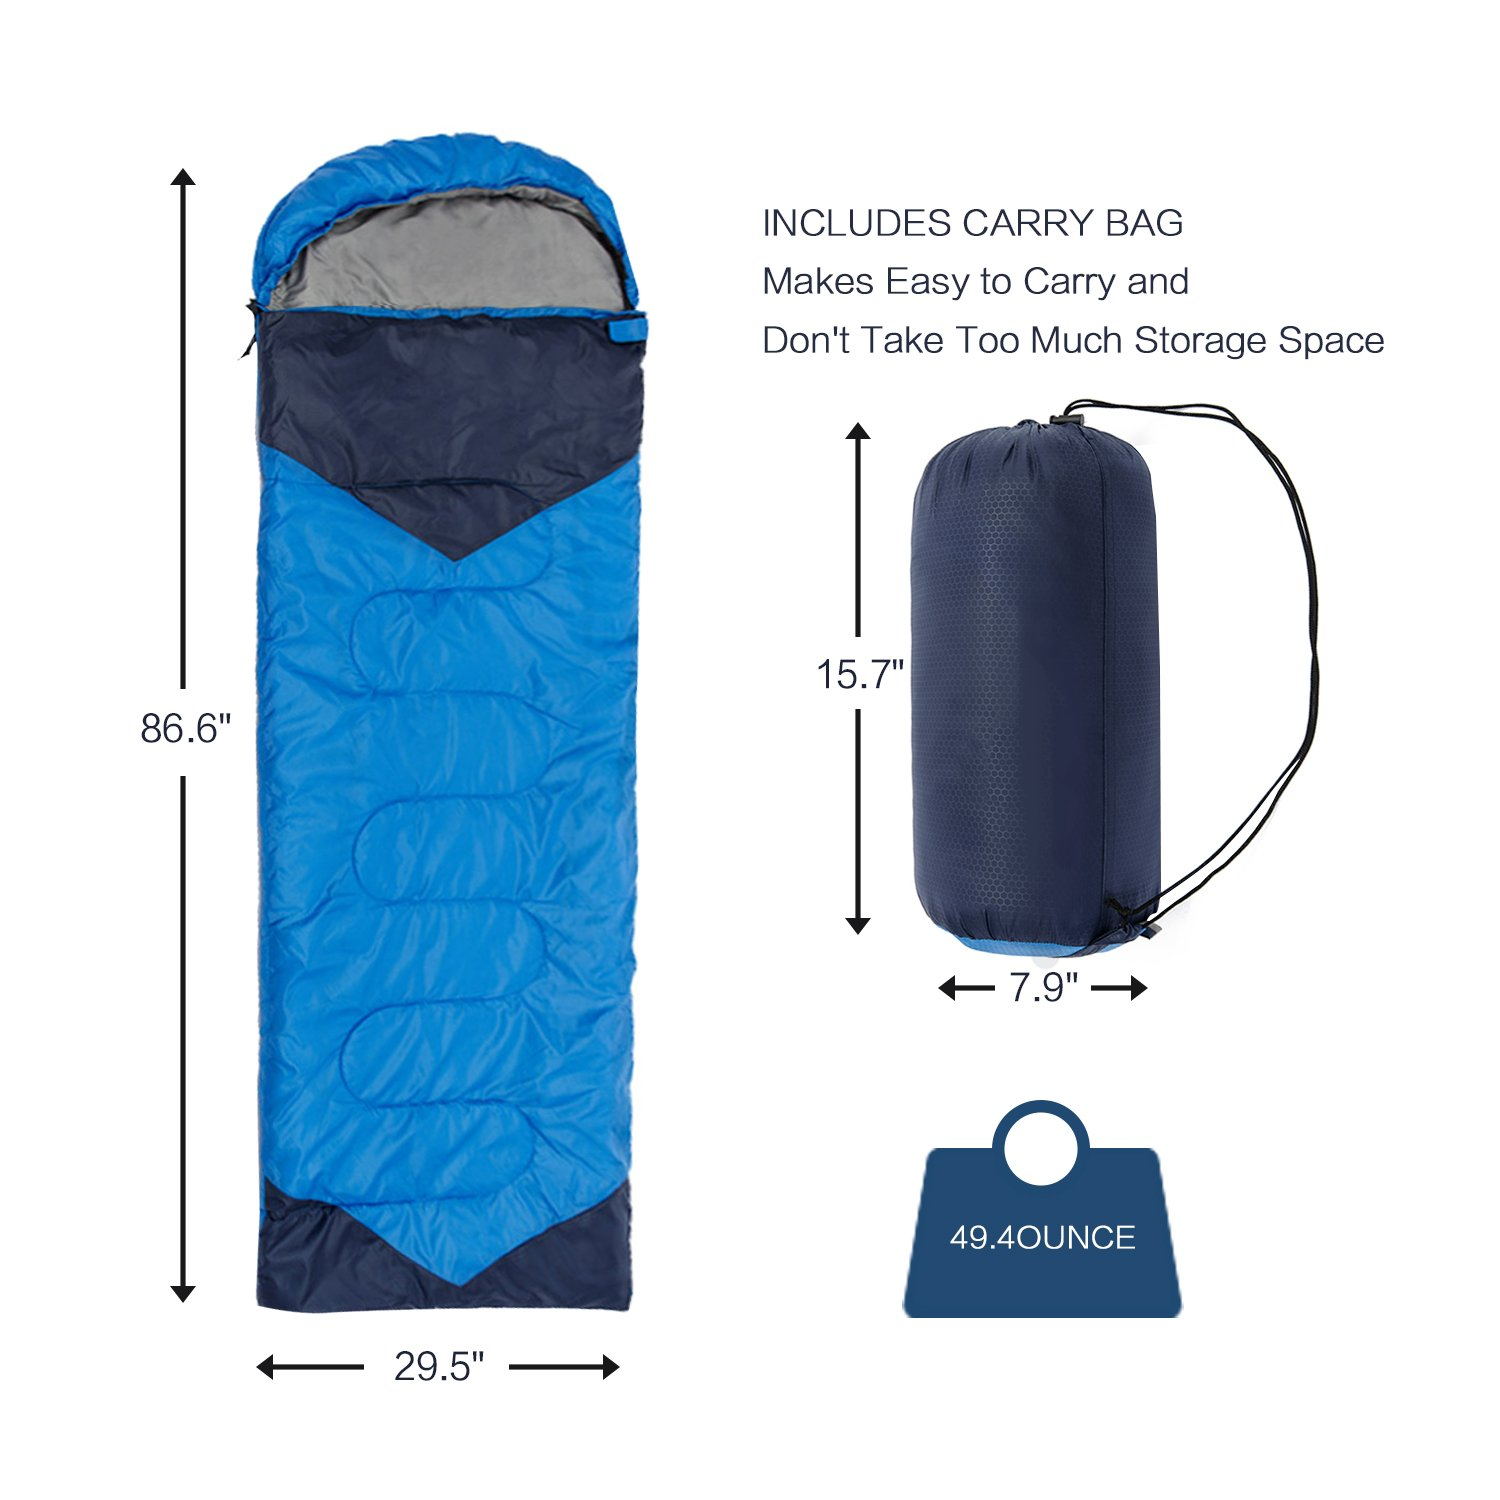 Comfort with Compression Sack Hiking Camping CARQI Sleeping Bag Envelope Lightweight Portable Outdoor Activities Great for 4 Season Traveling Waterproof